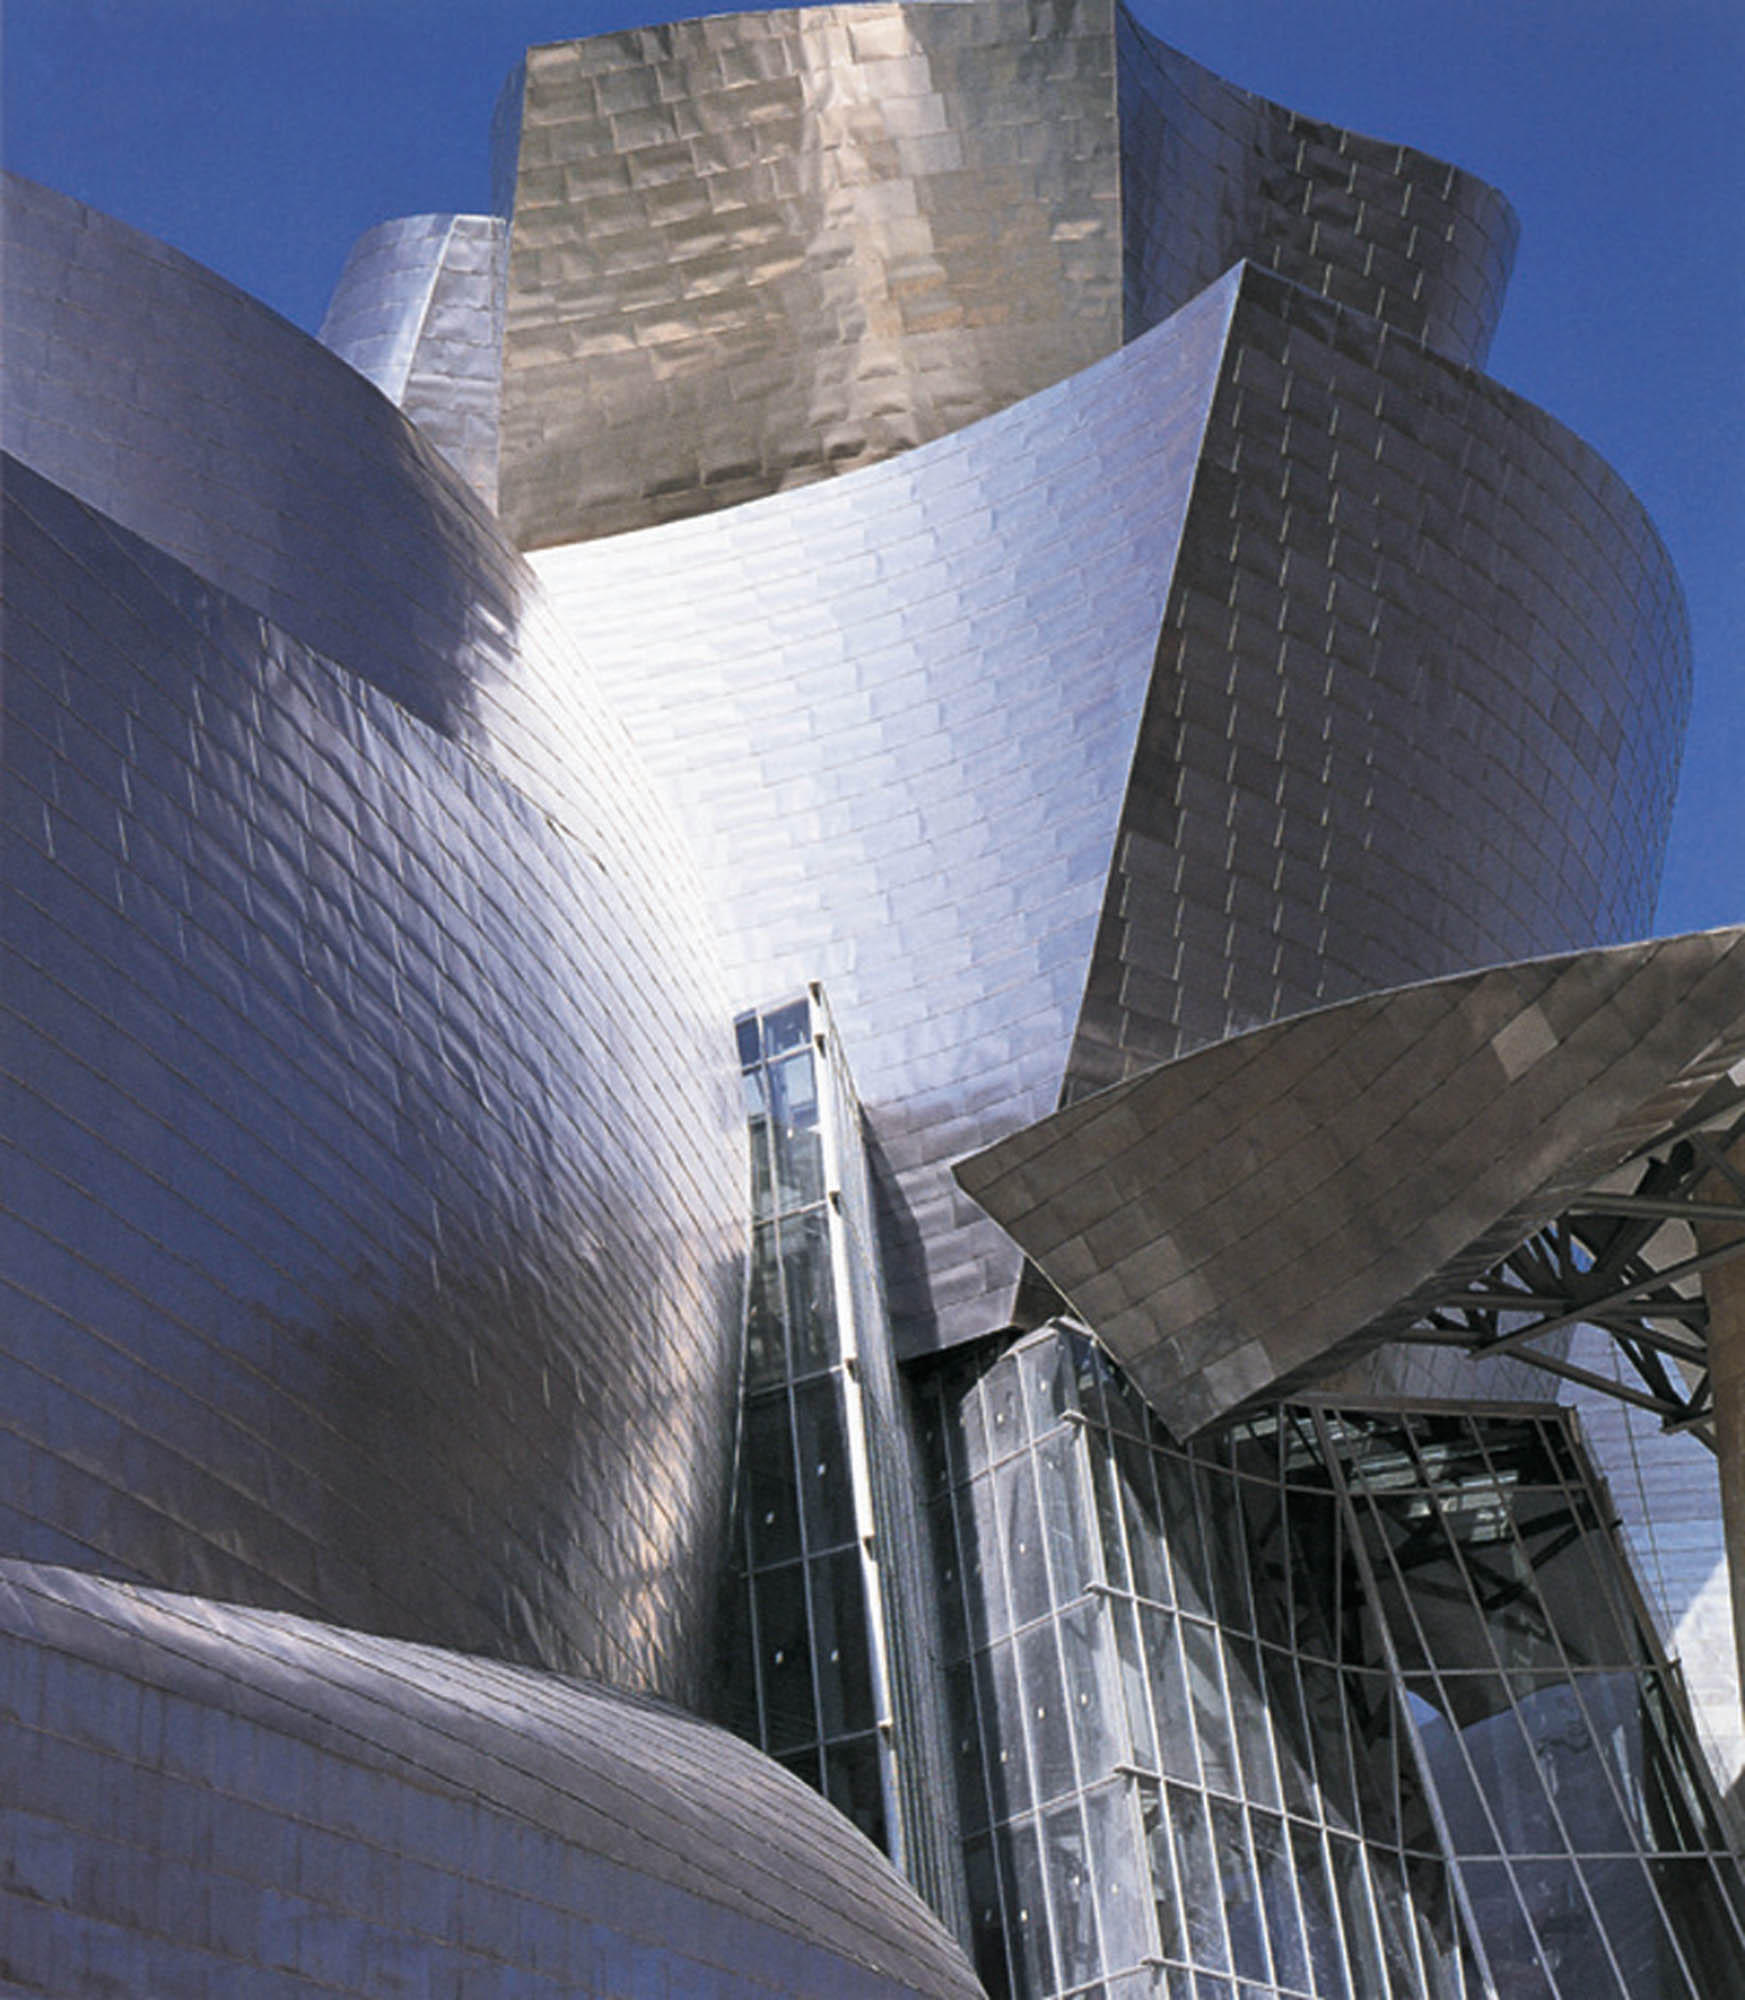 Frank Gehry's design, sheathed in titanium.